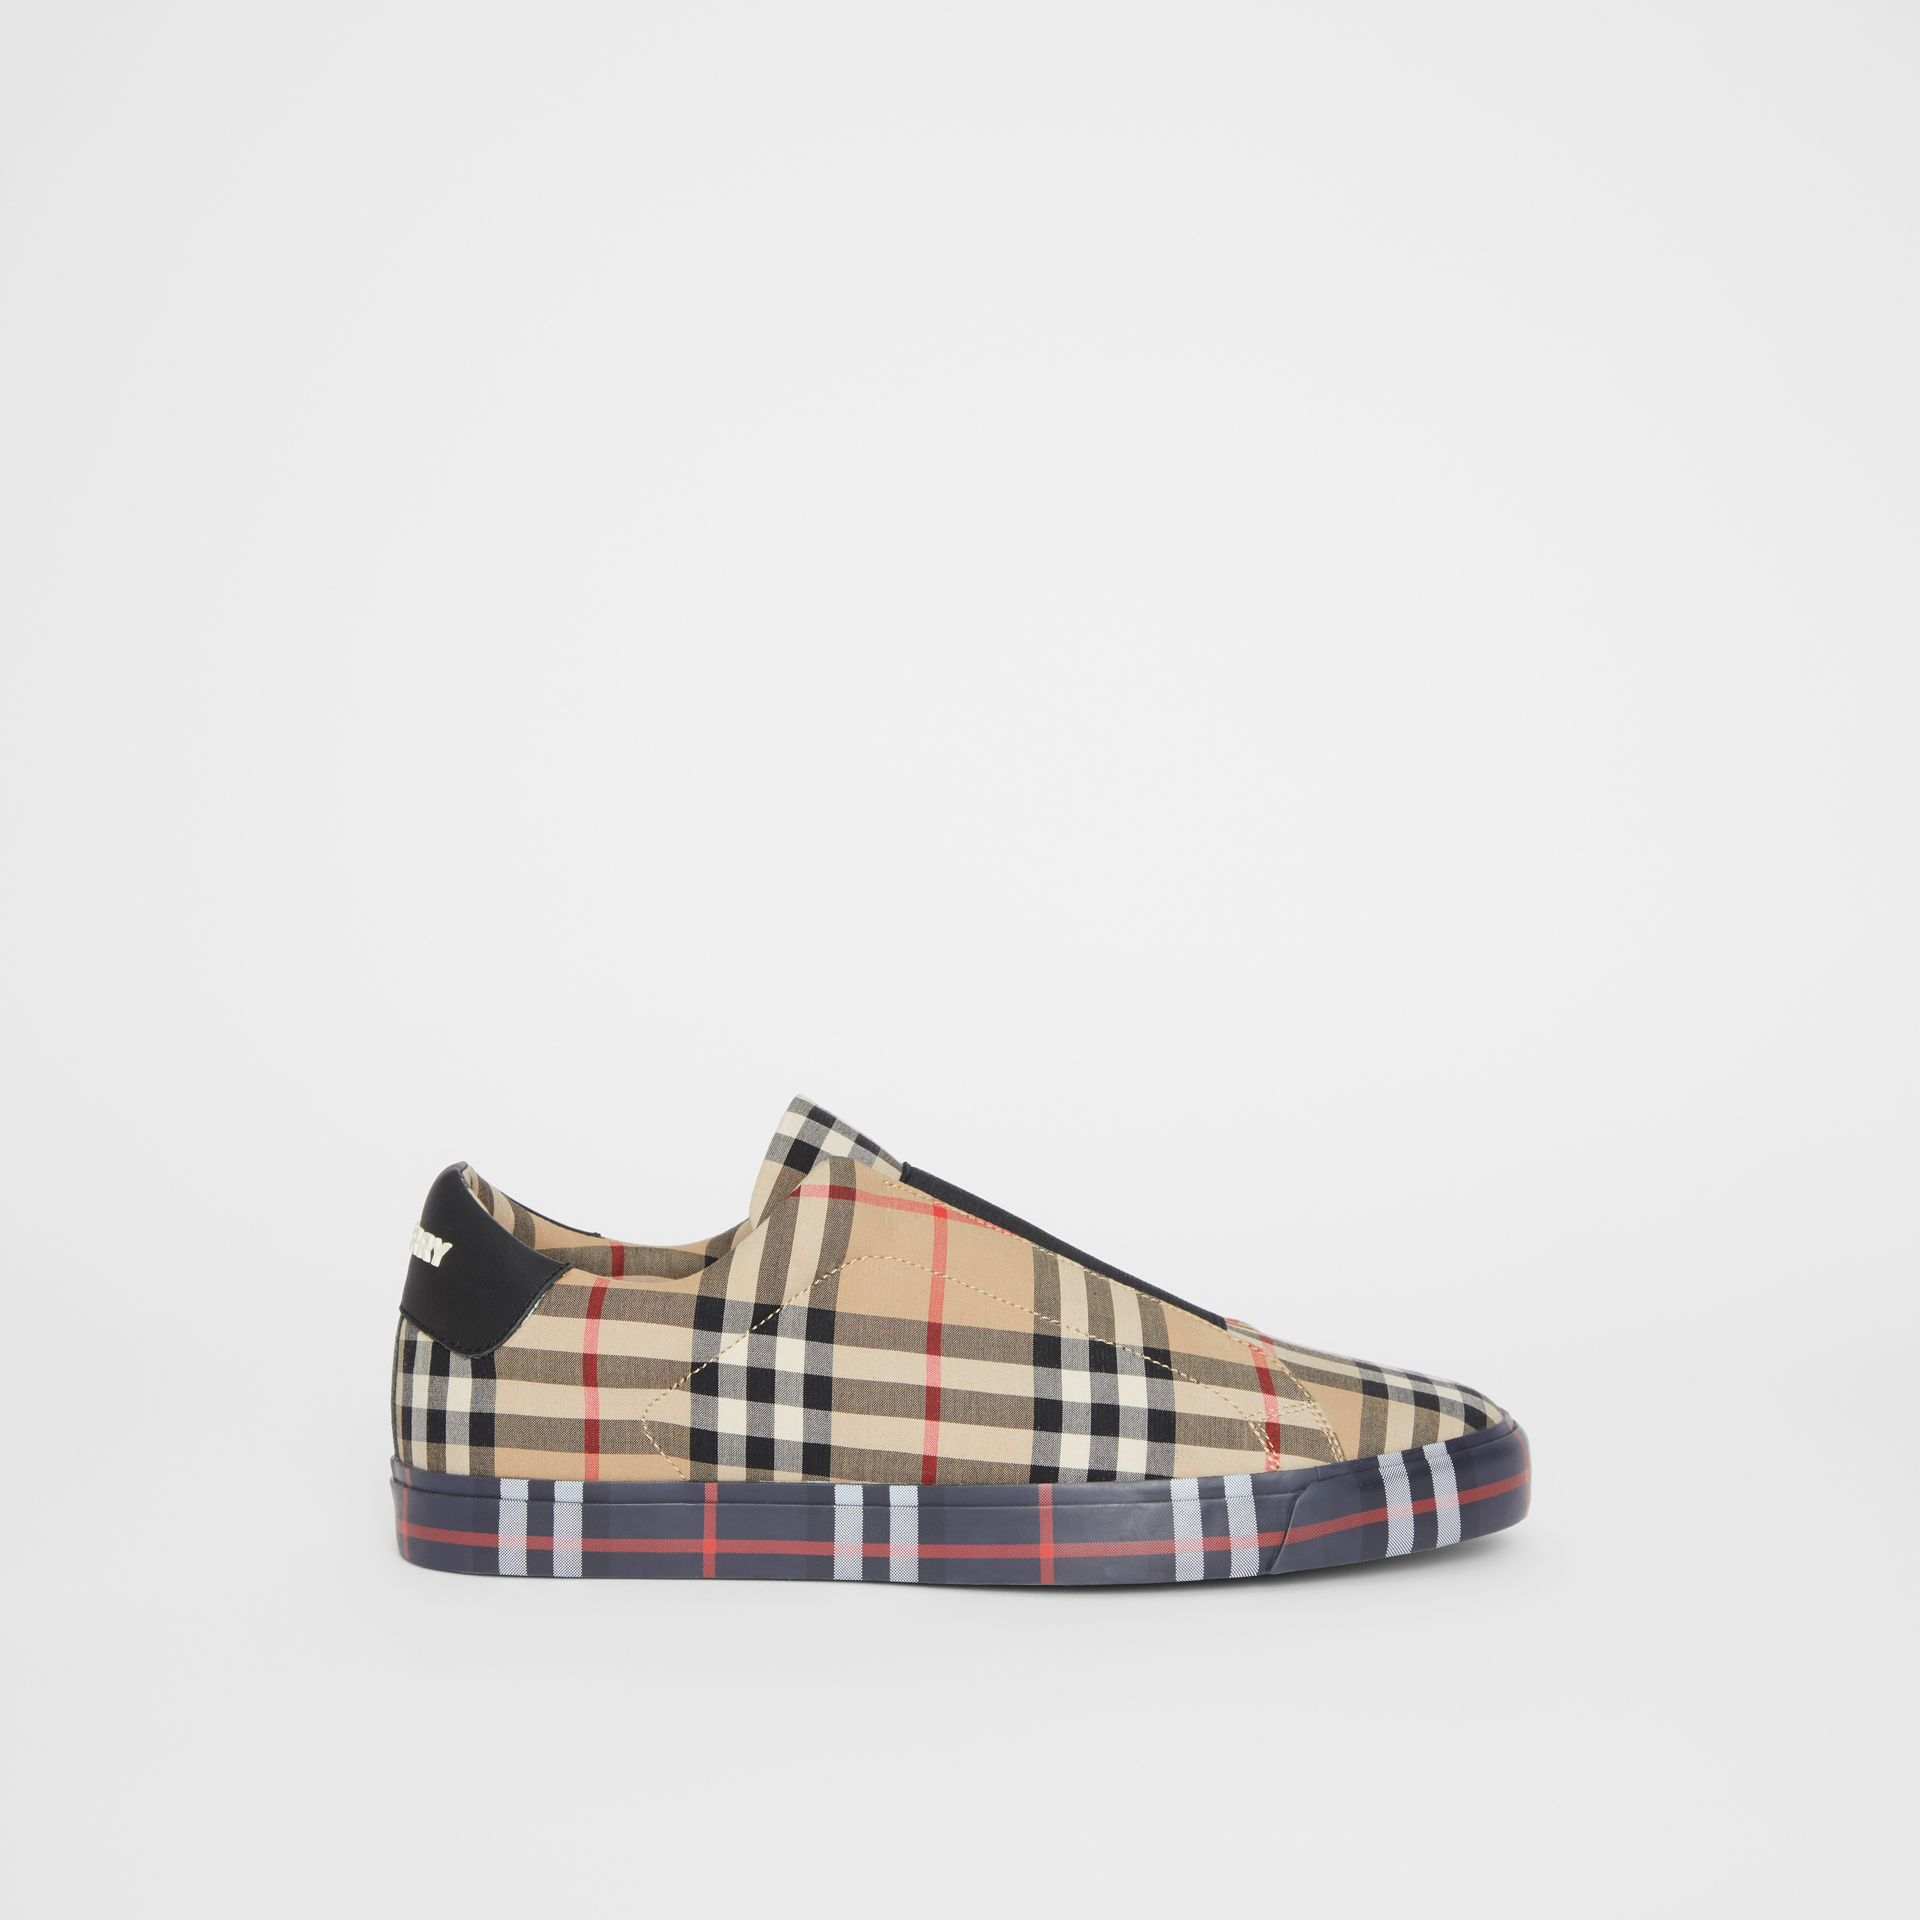 Contrast Check and Leather Slip-on Sneakers in Archive Beige - Men | Burberry Australia - gallery image 4